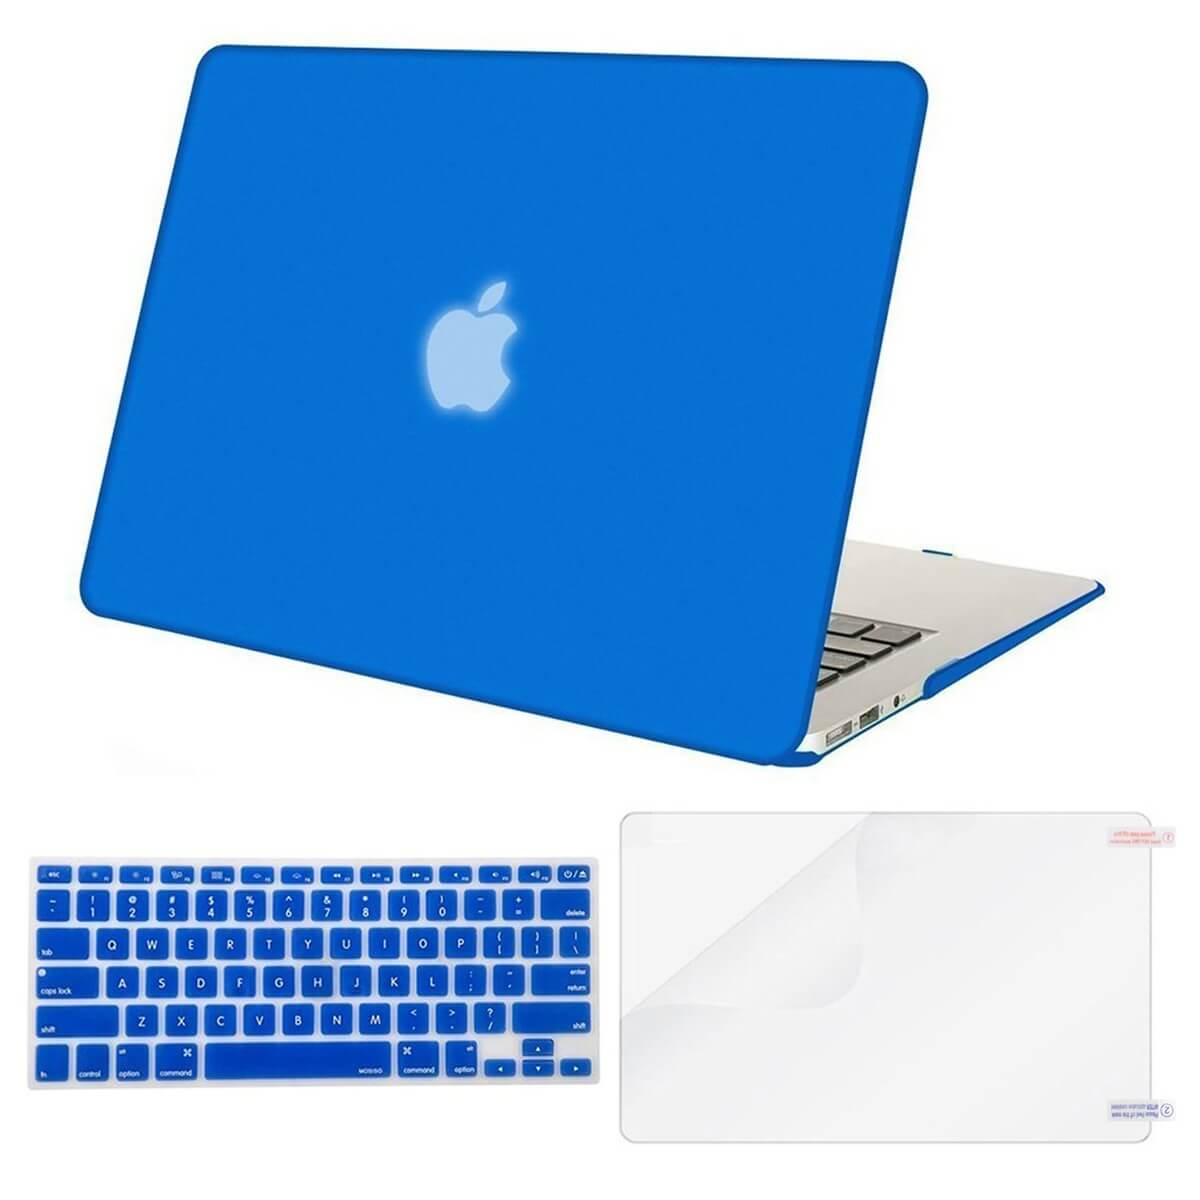 1 Mosiso hard shell case Best MacBook Air Accessories